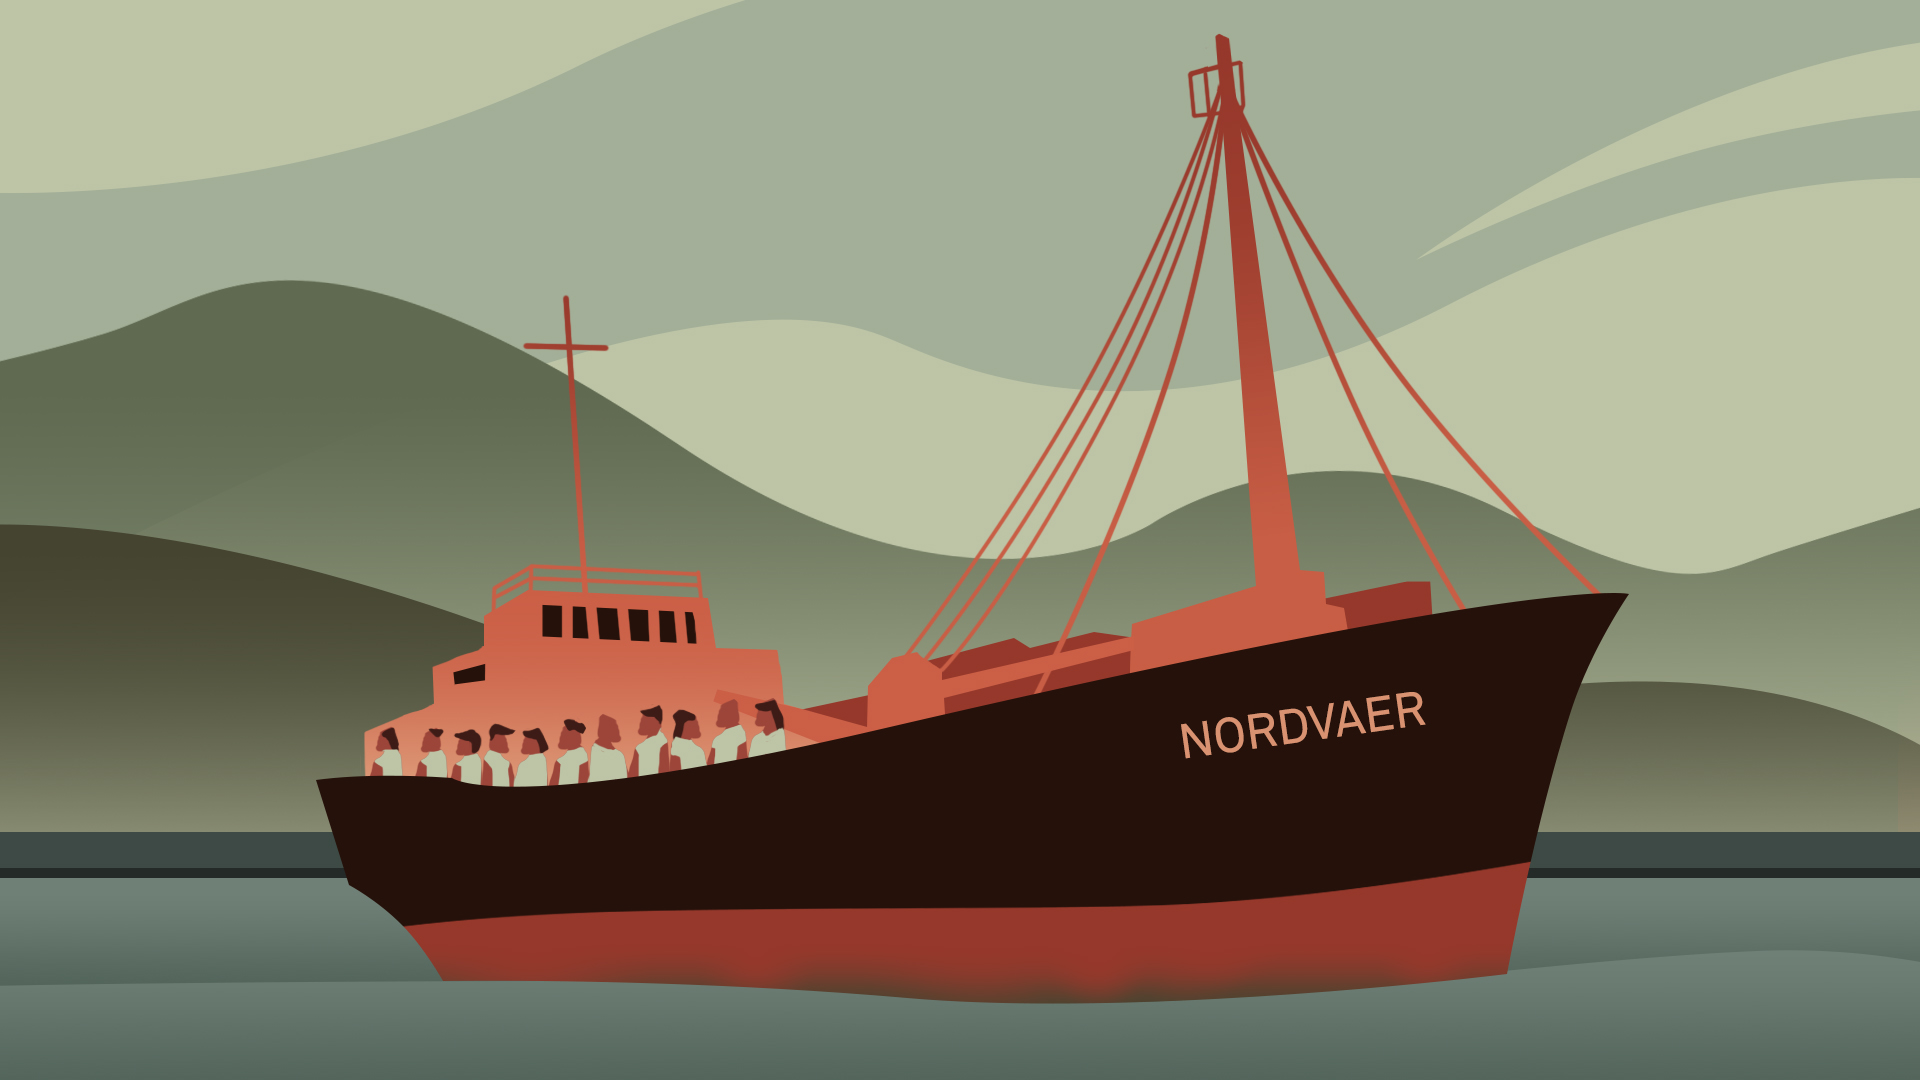 The Nordvaer ship that the Chagossians (from Chagos Islands) were transported in.